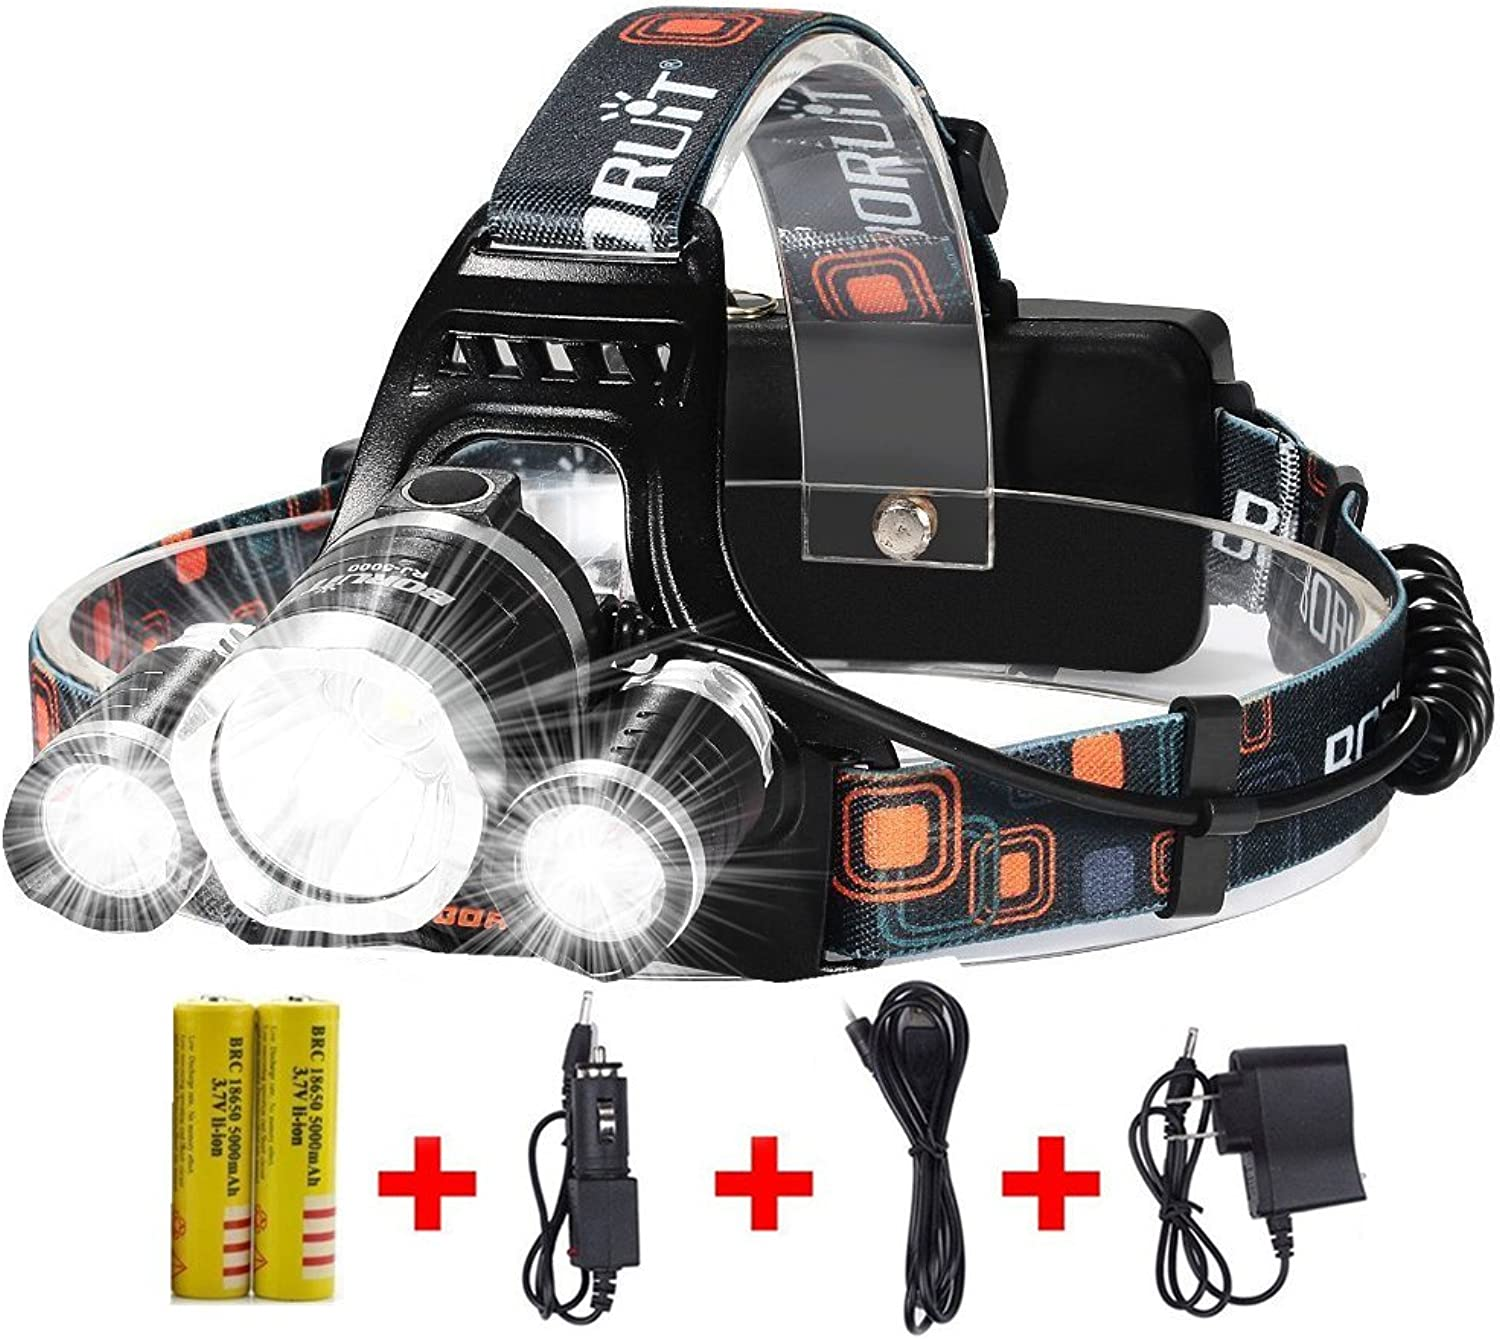 Brightest and Best LED Headlamp 10000 Lumen Flashlight Improved LED, Rechargeable 18650 Headlight flashlights Waterproof Hard Hat Light, Bright Head Lights, Running or Camping headlamps